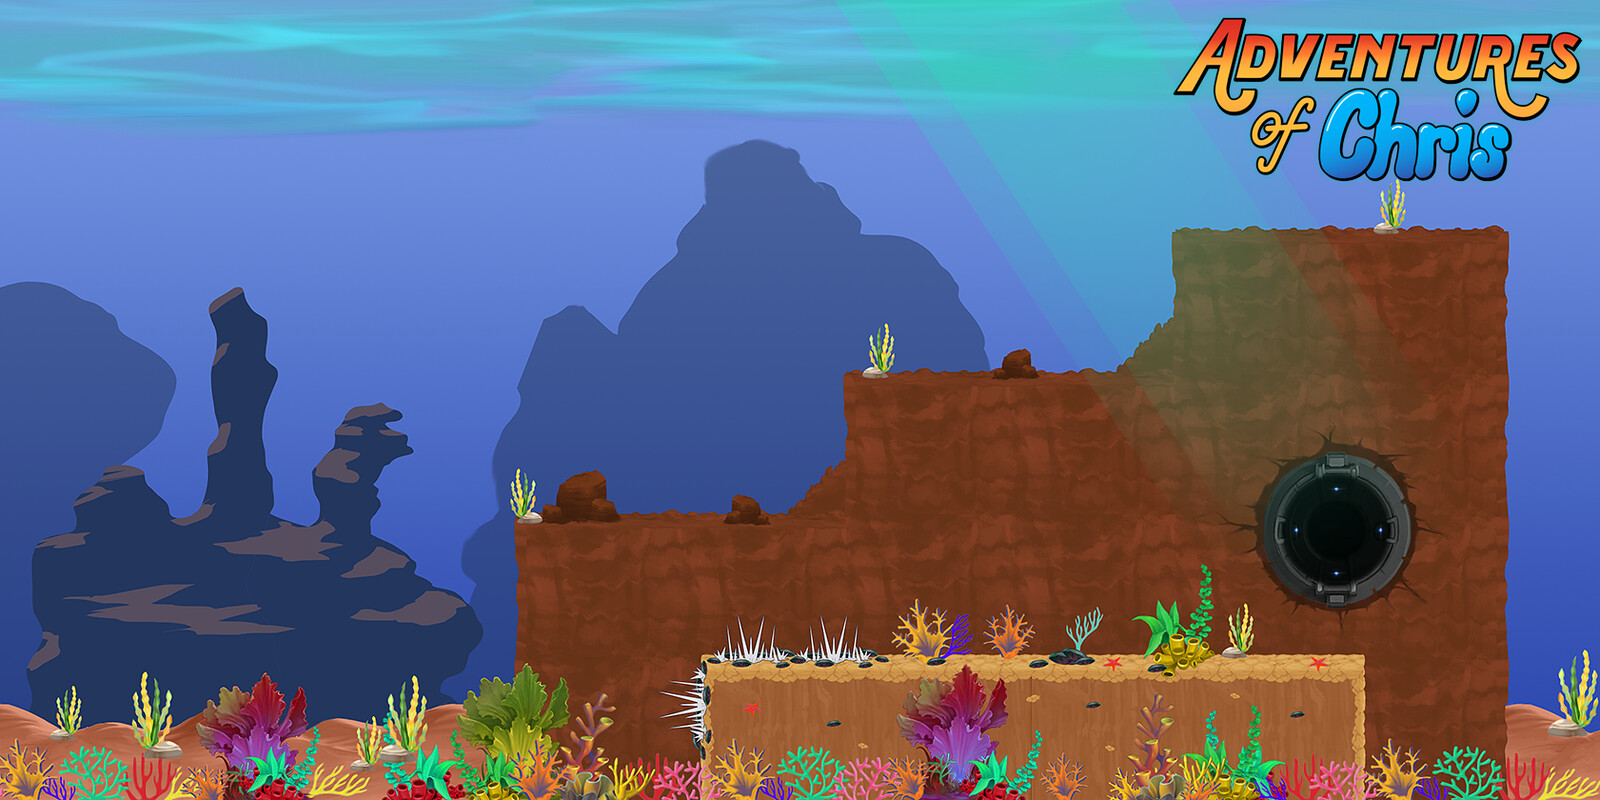 Underwater BG extended mockup with extra assets.